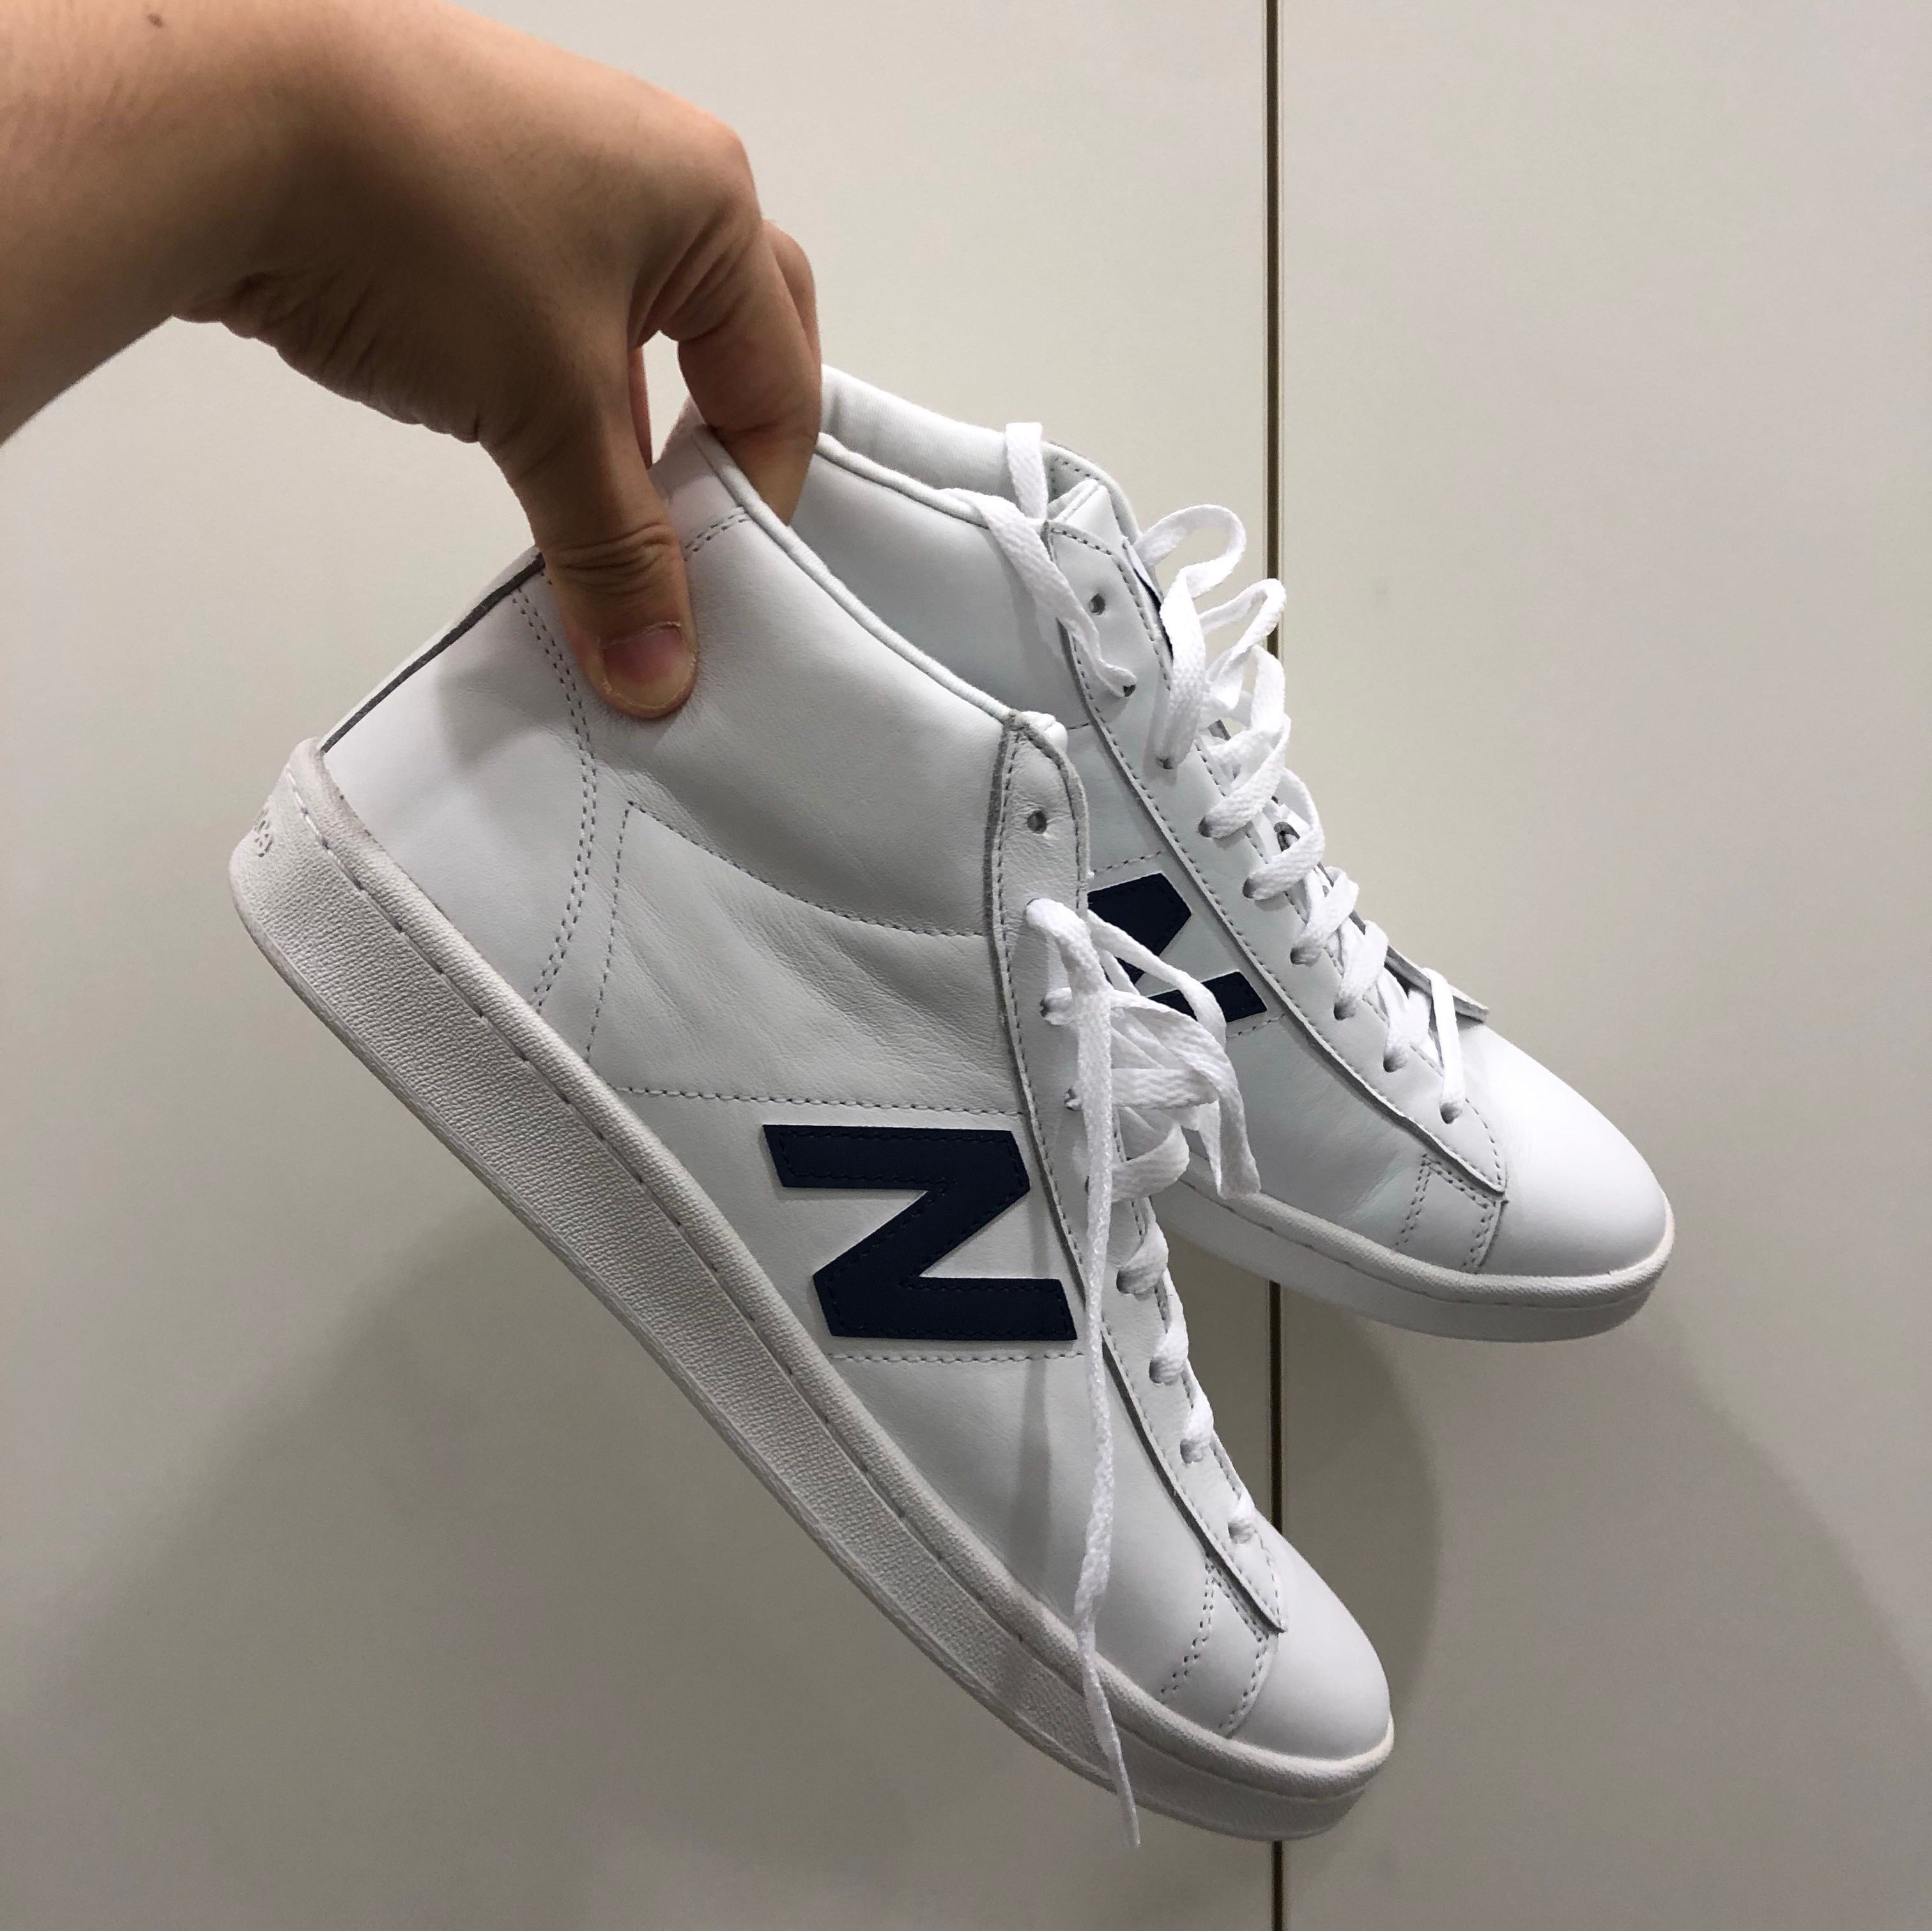 9f3794b97eb9 New Balance for J.Crew 891 Leather High-top Sneakers, Men's Fashion,  Footwear, Sneakers on Carousell